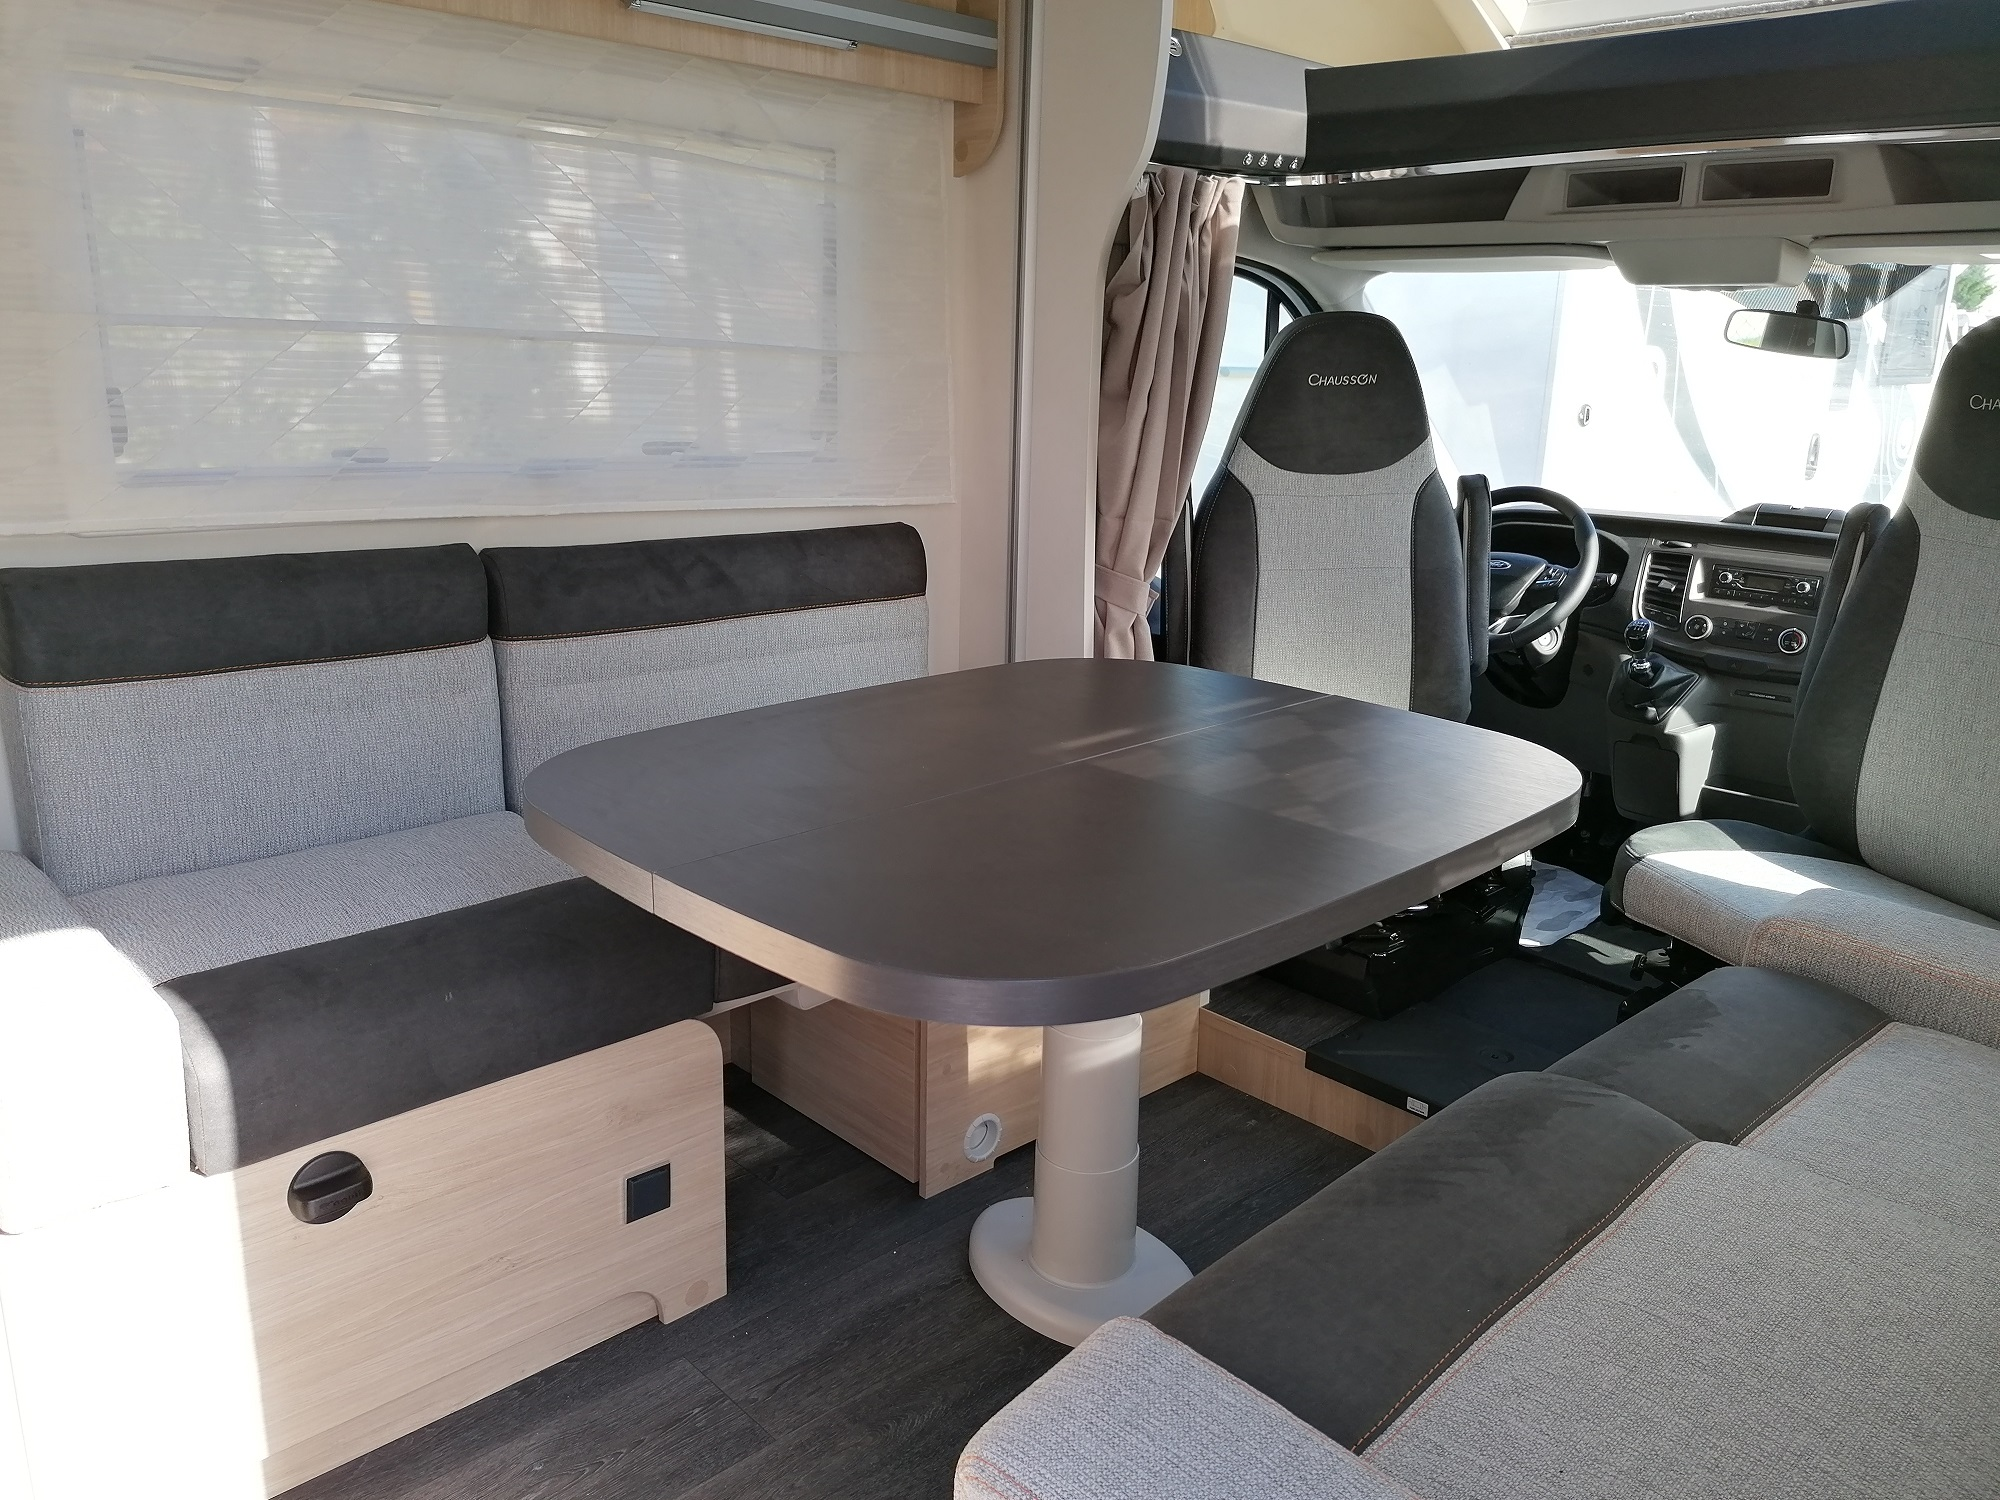 Chausson 720 First Line - 7